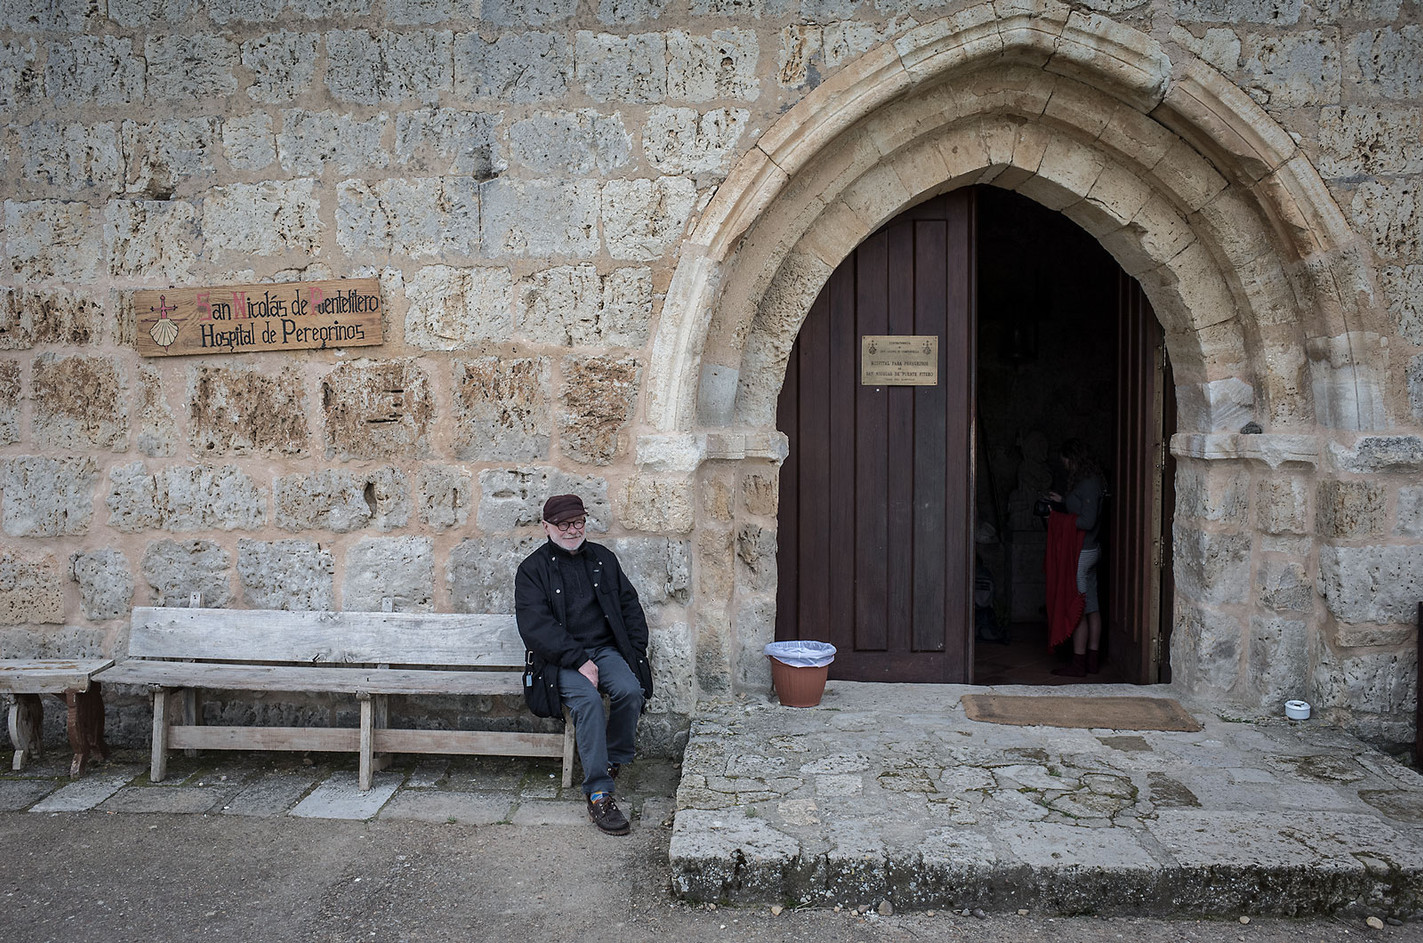 The San Nicolas Pilgrim's Hostel in Itero del Castillo is run by Italians from the Confraternity of San Jacopo di Compostella near Perugia. The hostel is in a small monastery restored 30 years ago by the Confraternity. Here the hospitalero sits outside to have a cigarette break. Centuries ago the monks here would wash the feet of pilgrims staying overnight at the monastery. Today, the Italian hosts keep up the tradition with a symbolic washing of the feet (water is poured over one foot of each guest). A full Italian meal is then served amid candle light, as the building has no electricity.